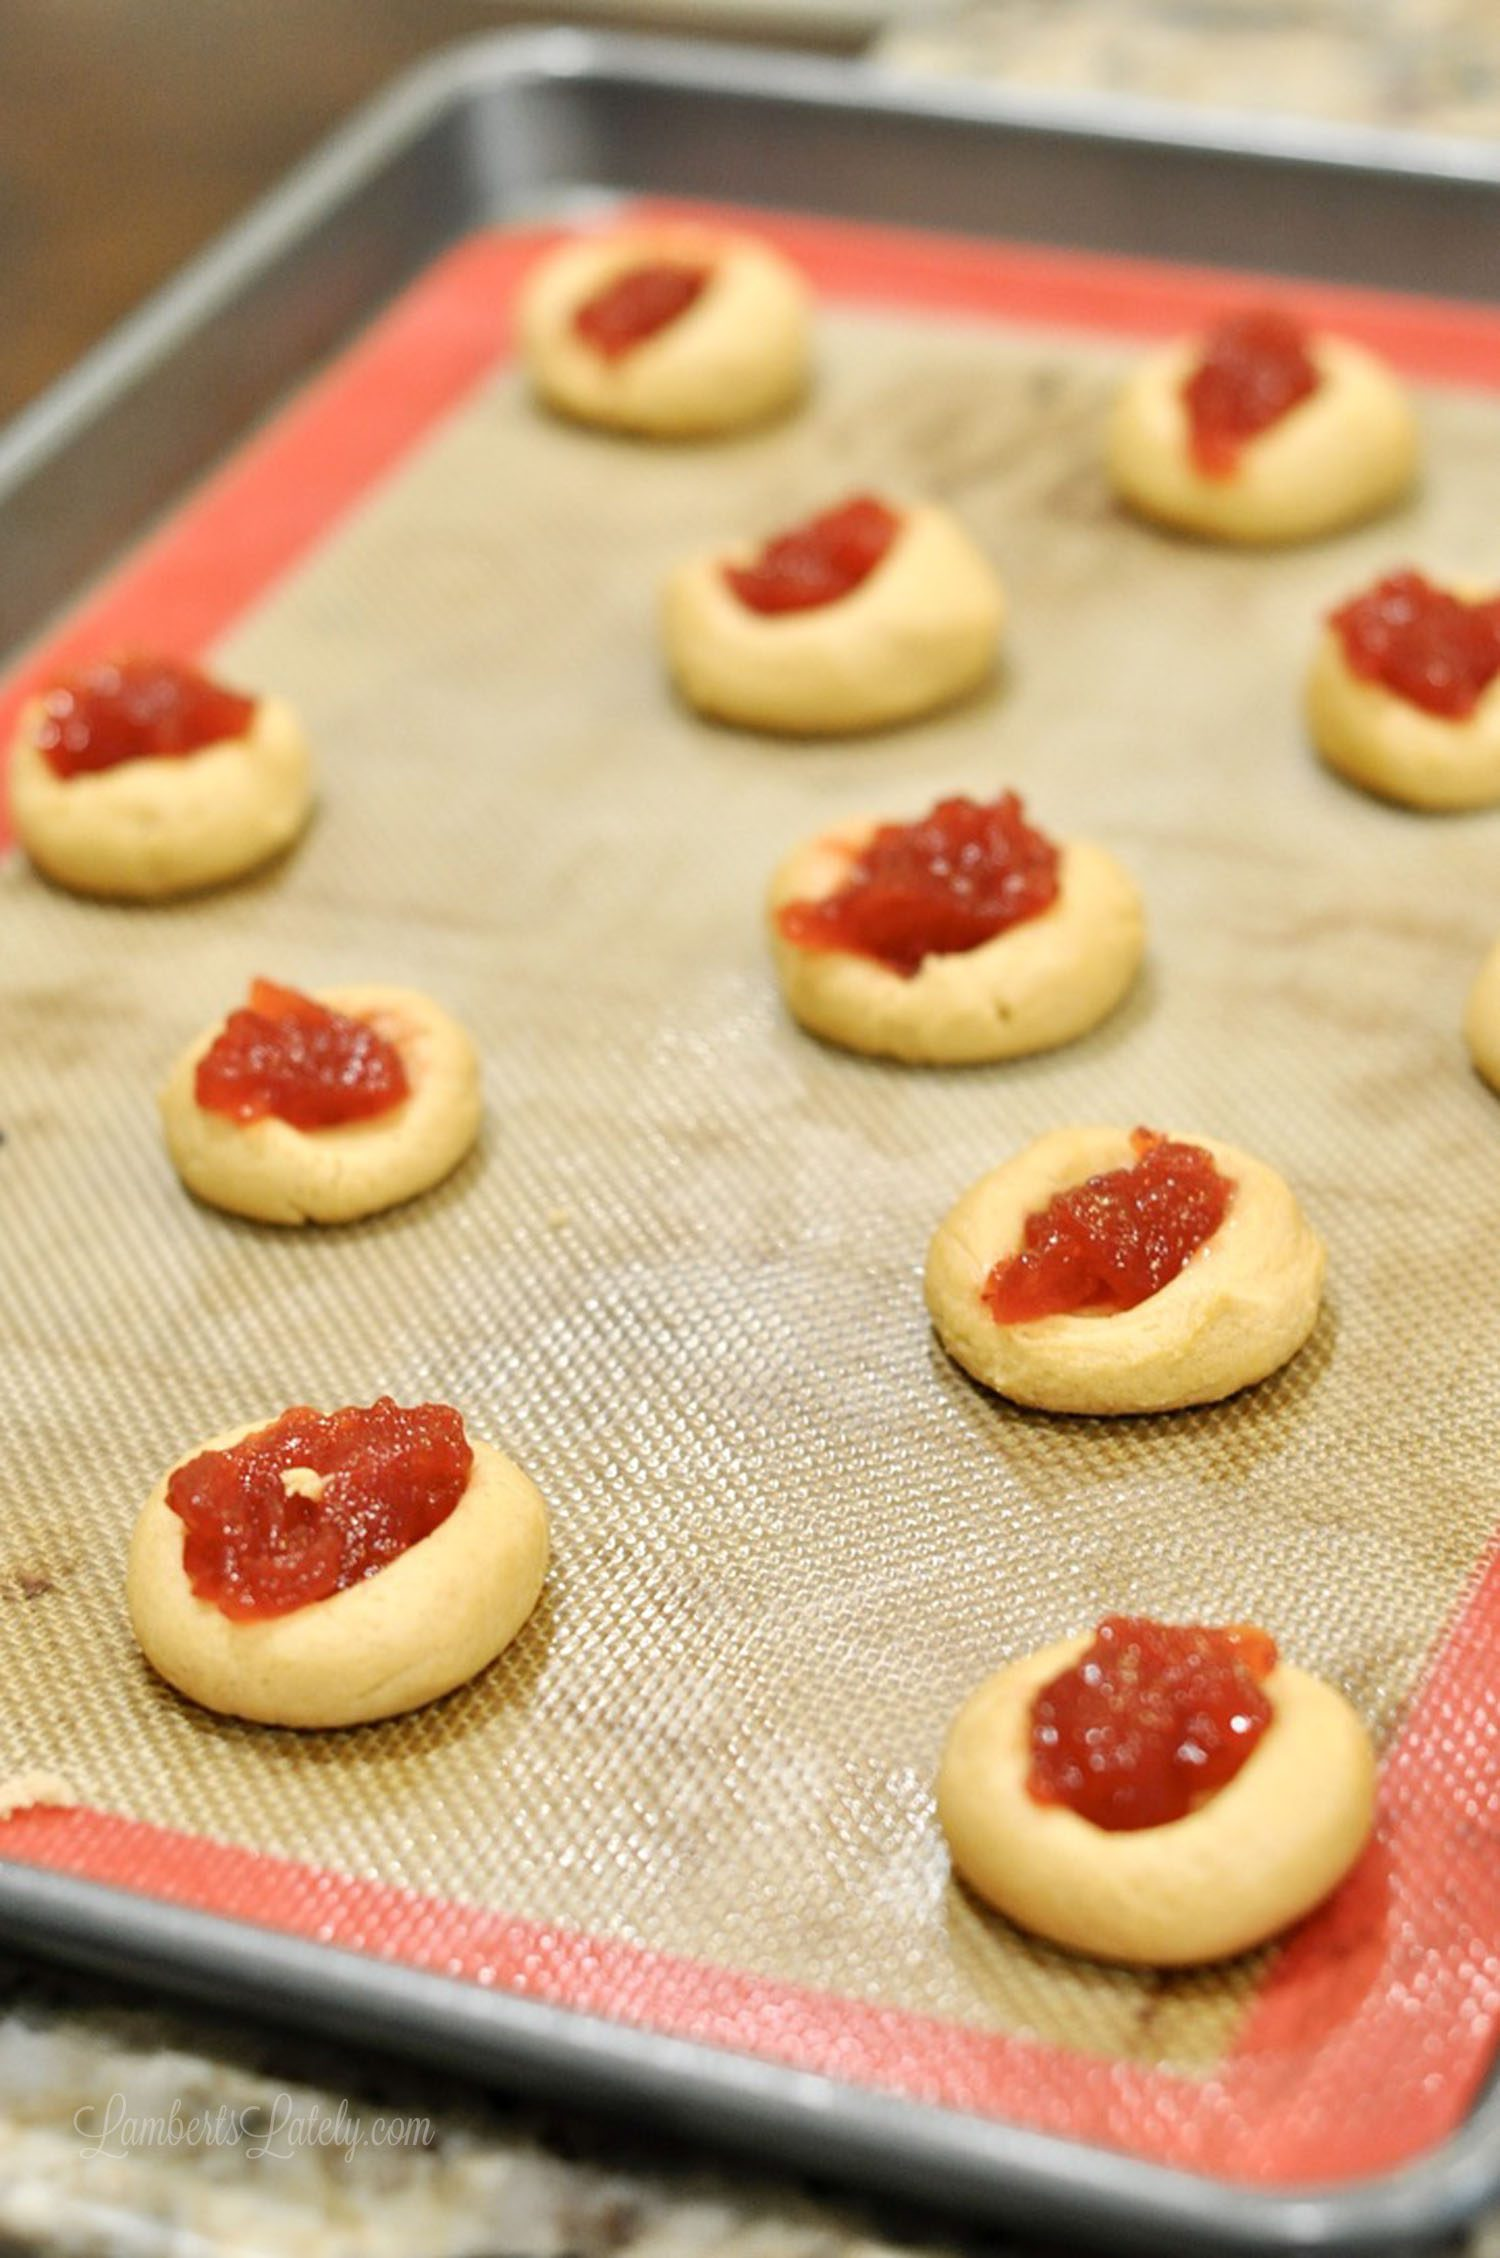 Check out this recipe for peanut butter & jelly thumbprint cookies. Such a fun, easy homemade dessert that's perfect for Christmas - super soft and chewy!